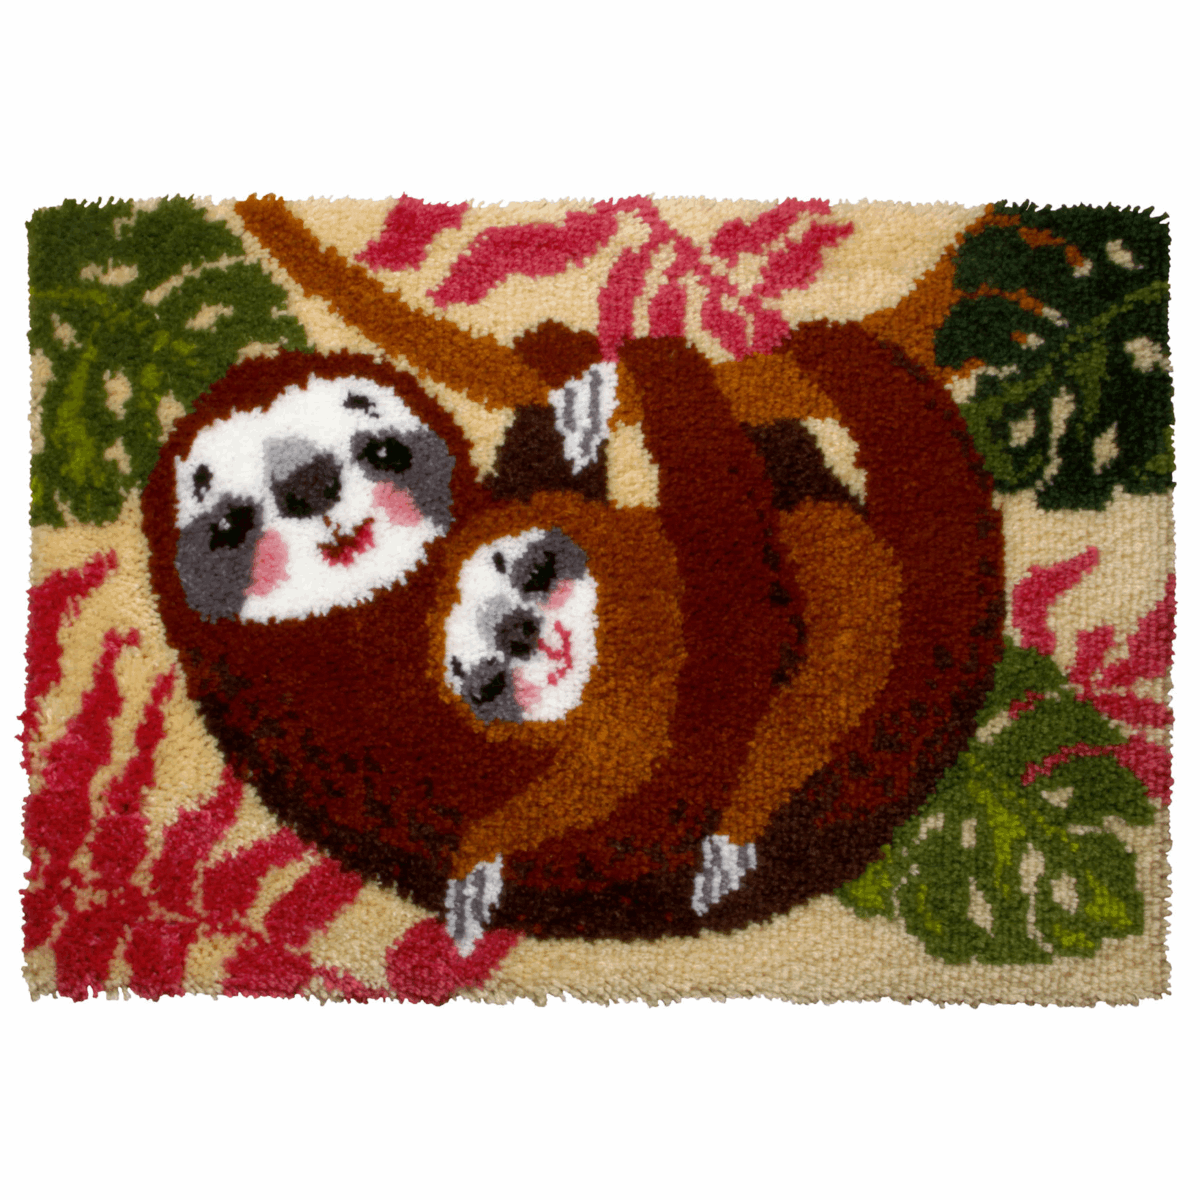 Picture of Latch Hook Kit: Rug: Sloth Family